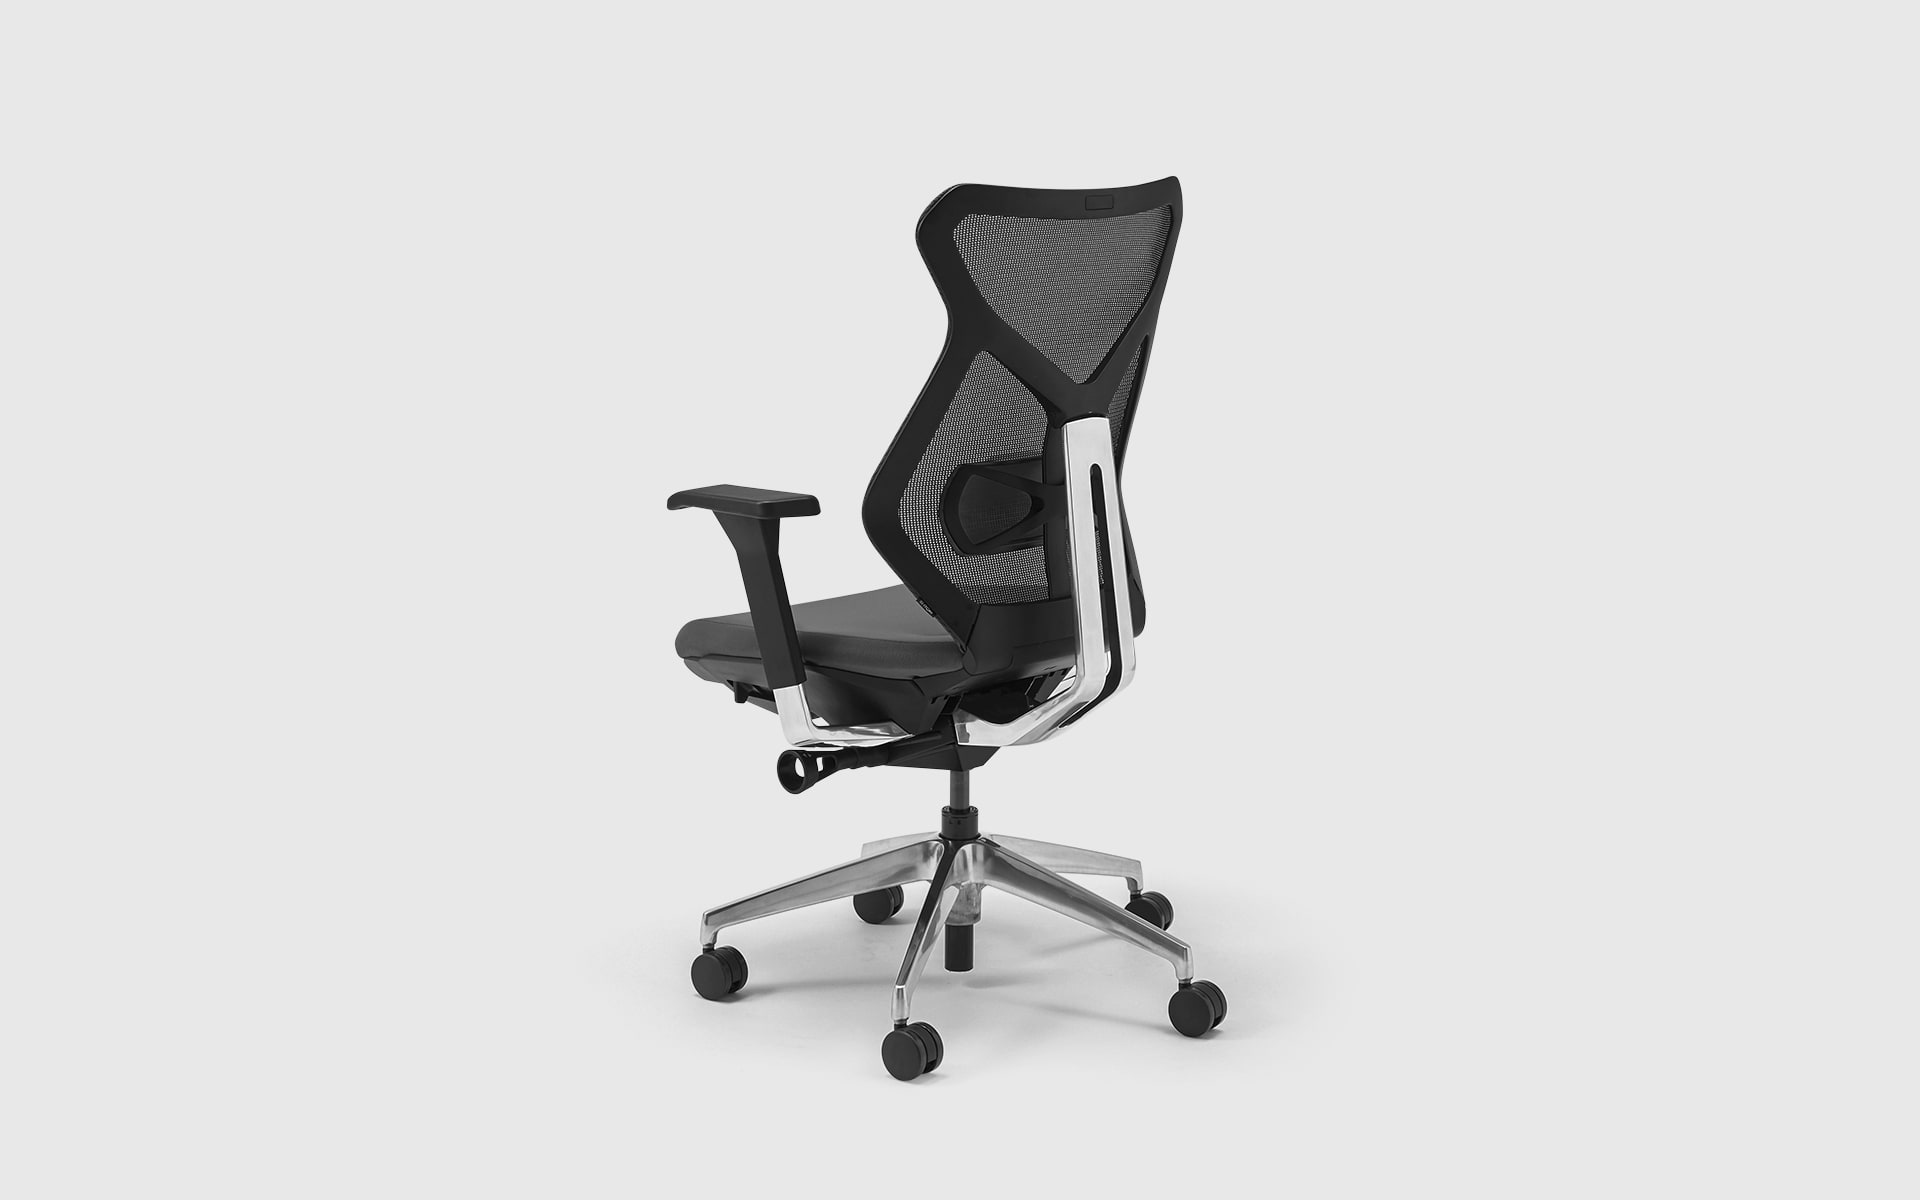 Black-and-grey ITOKI Sequa Office Chair by ITO Design